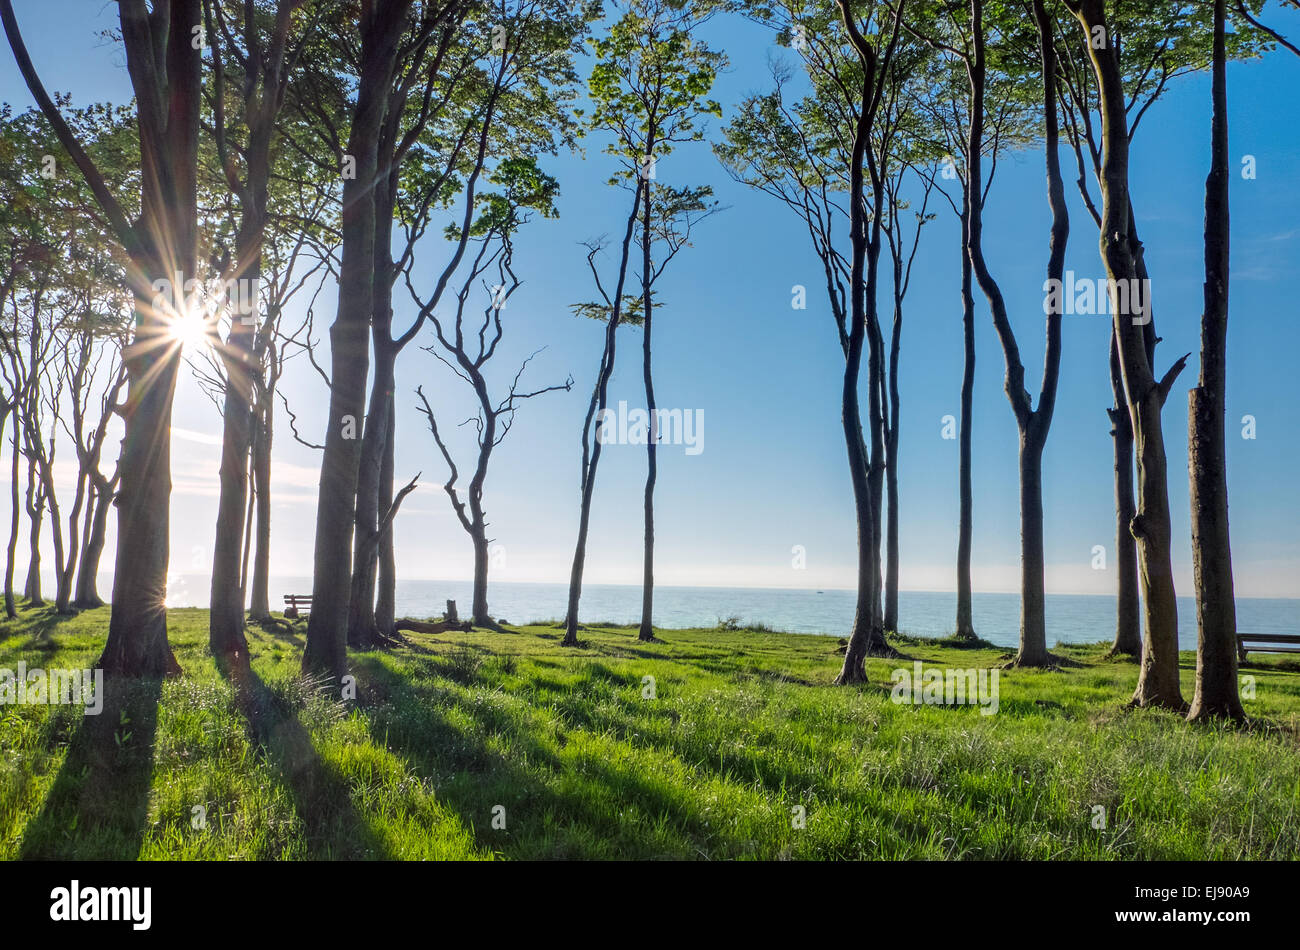 The sun shines through some trees - Stock Image